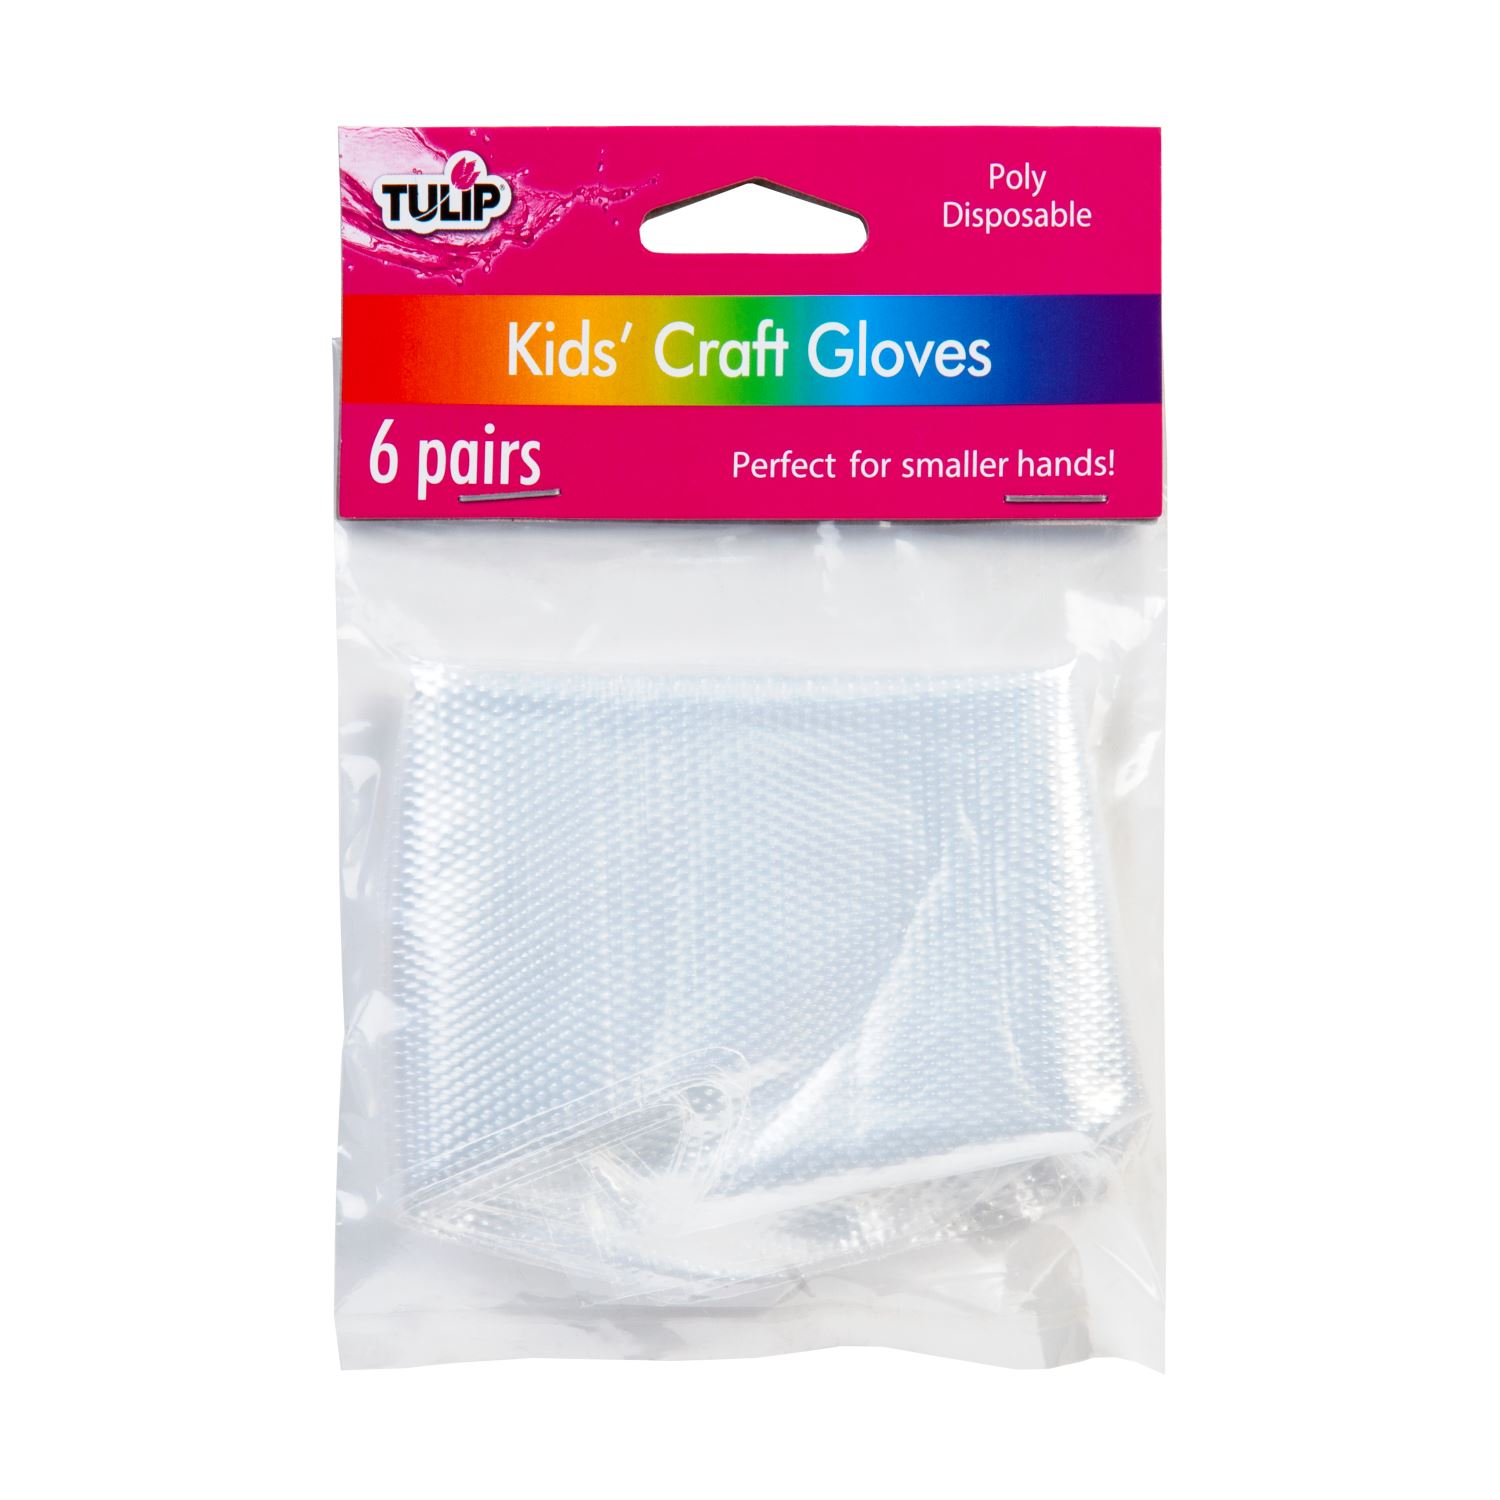 Picture of Tulip® Kids' Craft Gloves 6 Pairs